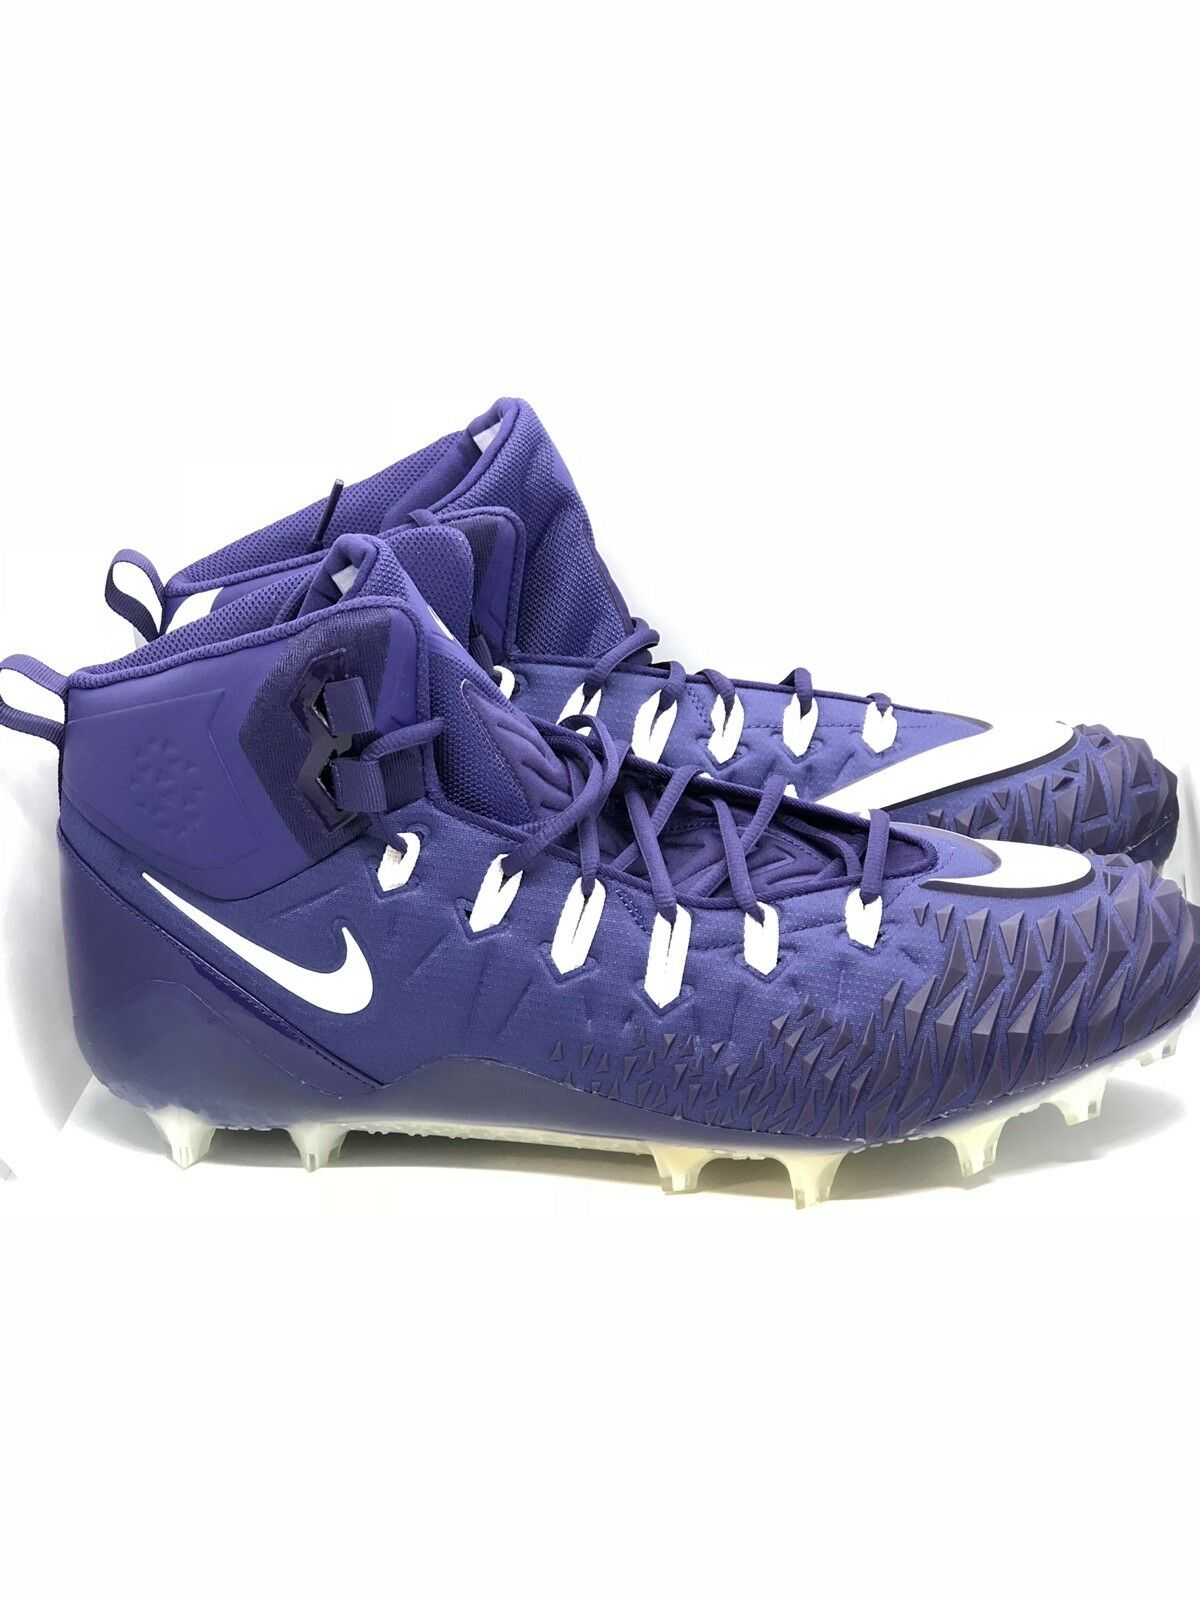 NIKE FORCE SAVAGE PRO TD PROMO FOOTBALL CLEATS PURPLE 918346-515 NEW SZ 18